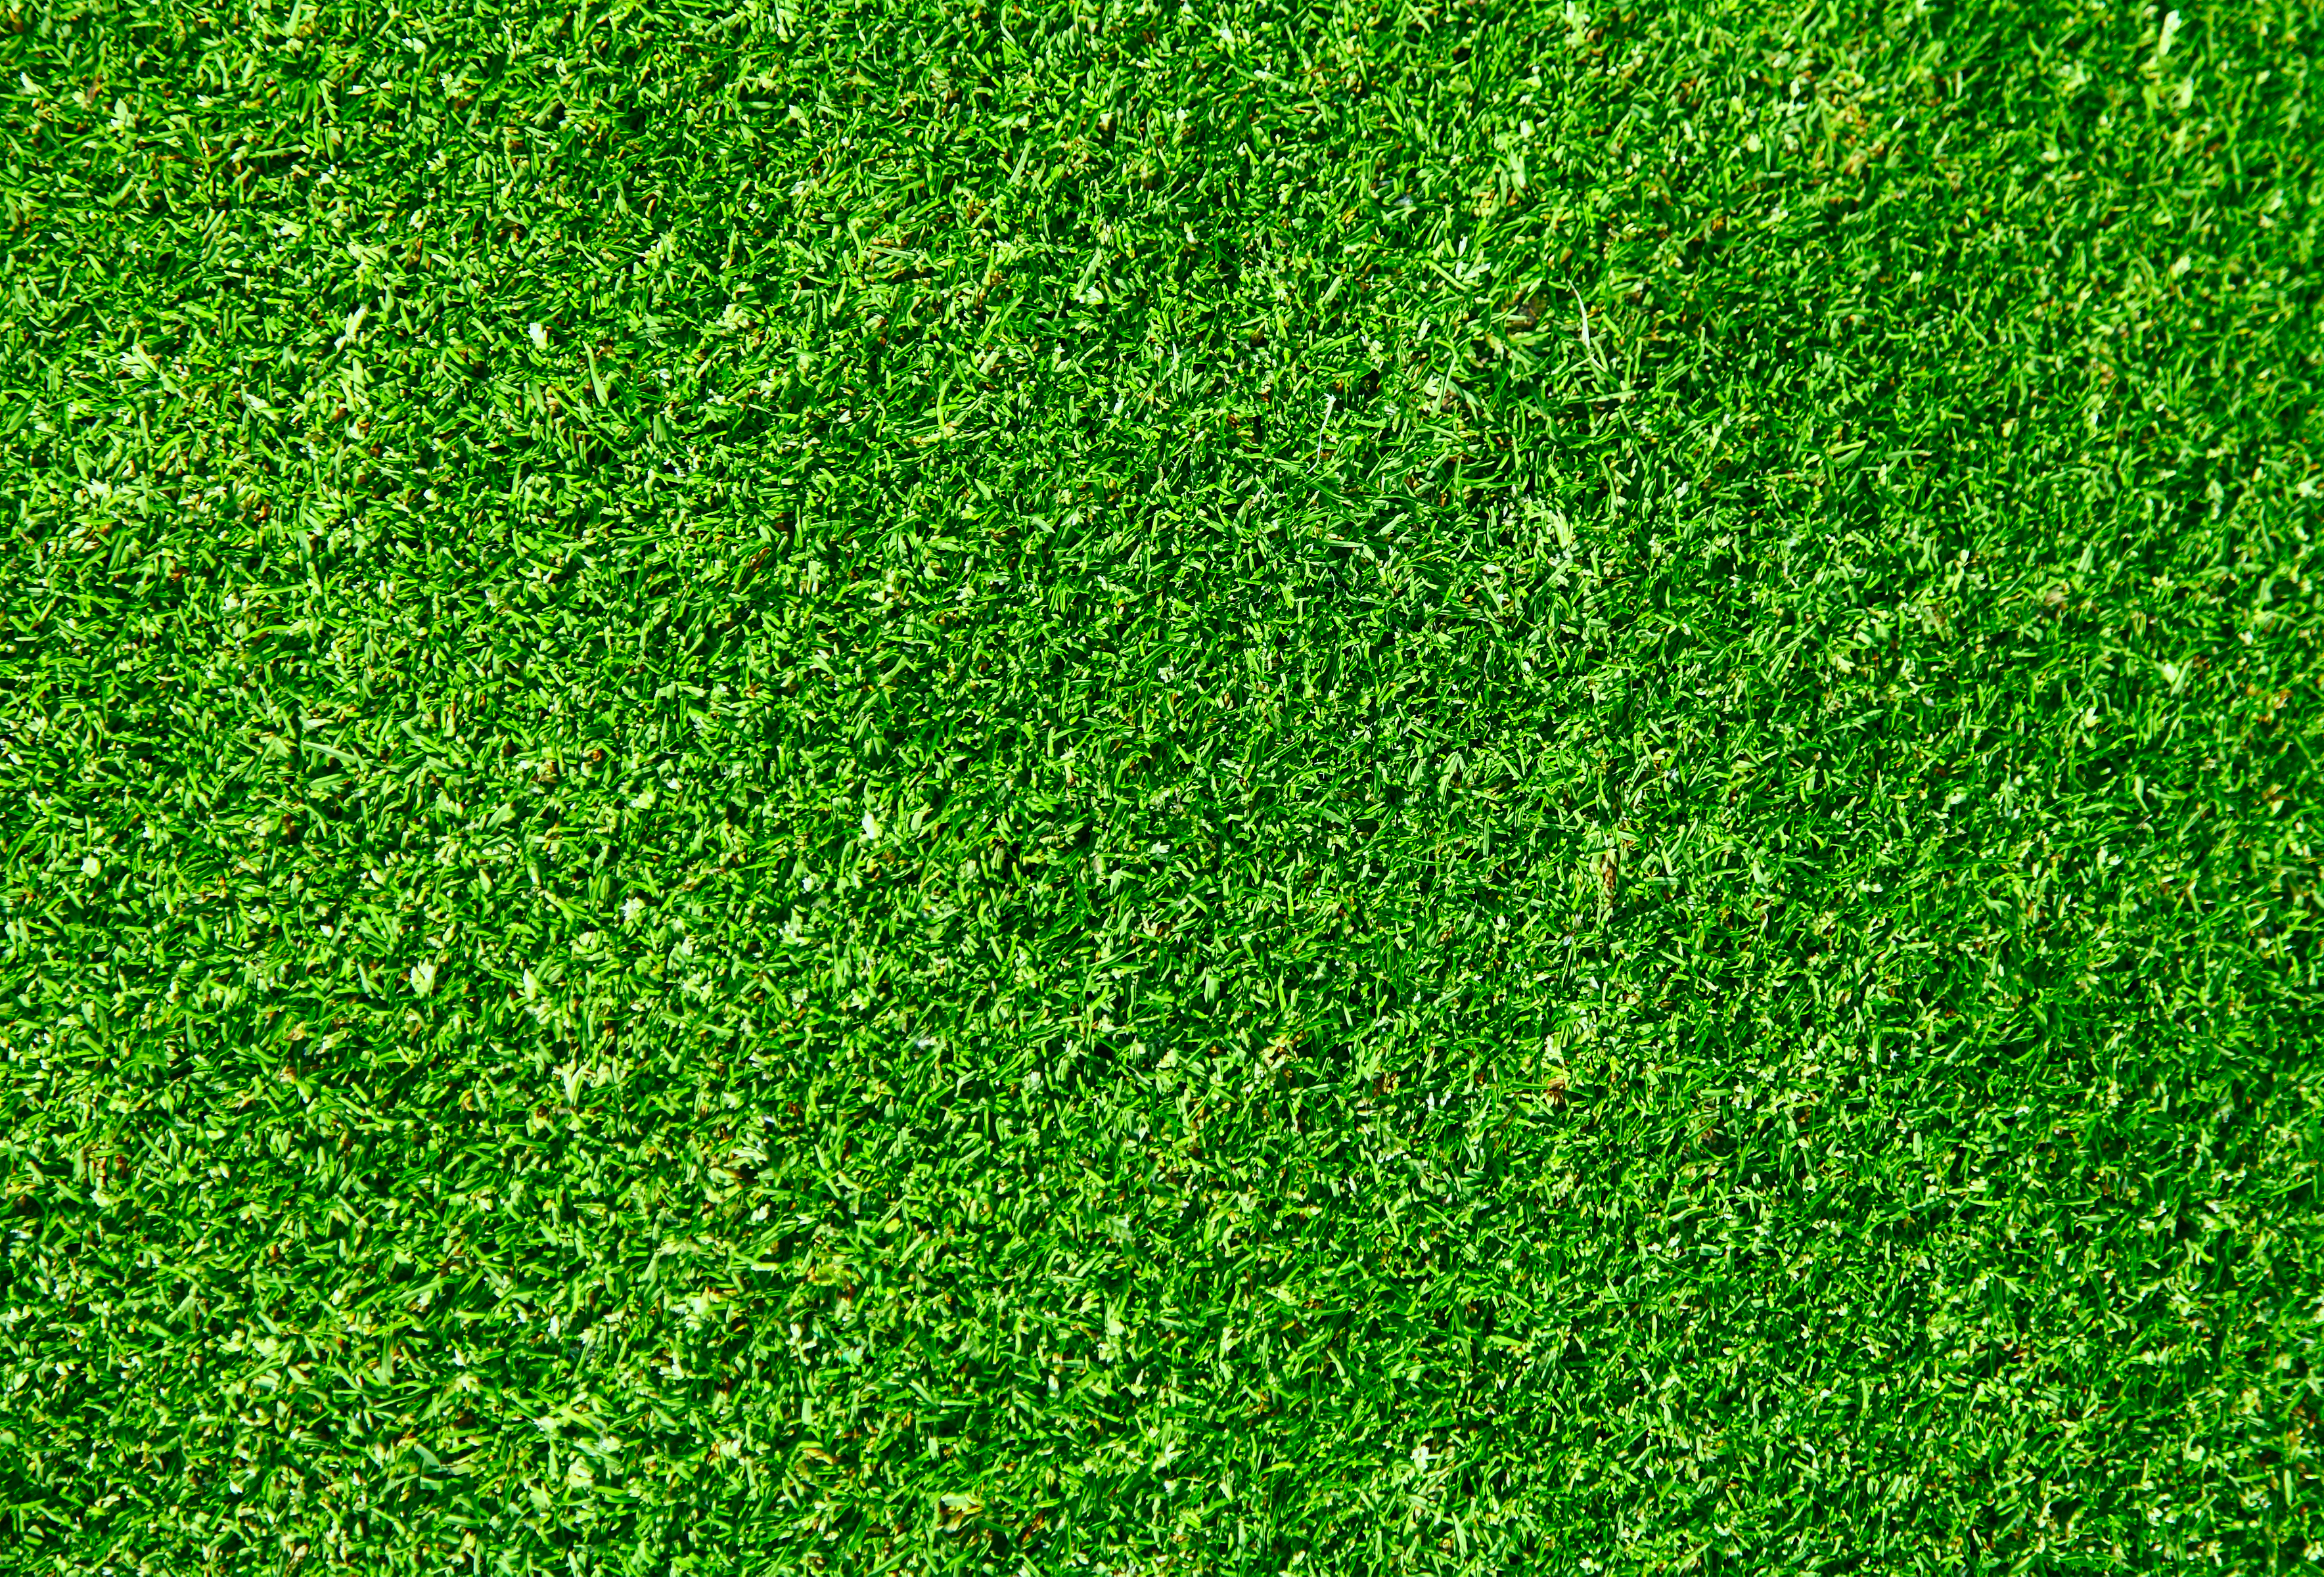 ... February 29, 2012 at 3537 × 2400 in seamless-green-grass-texture.jpg